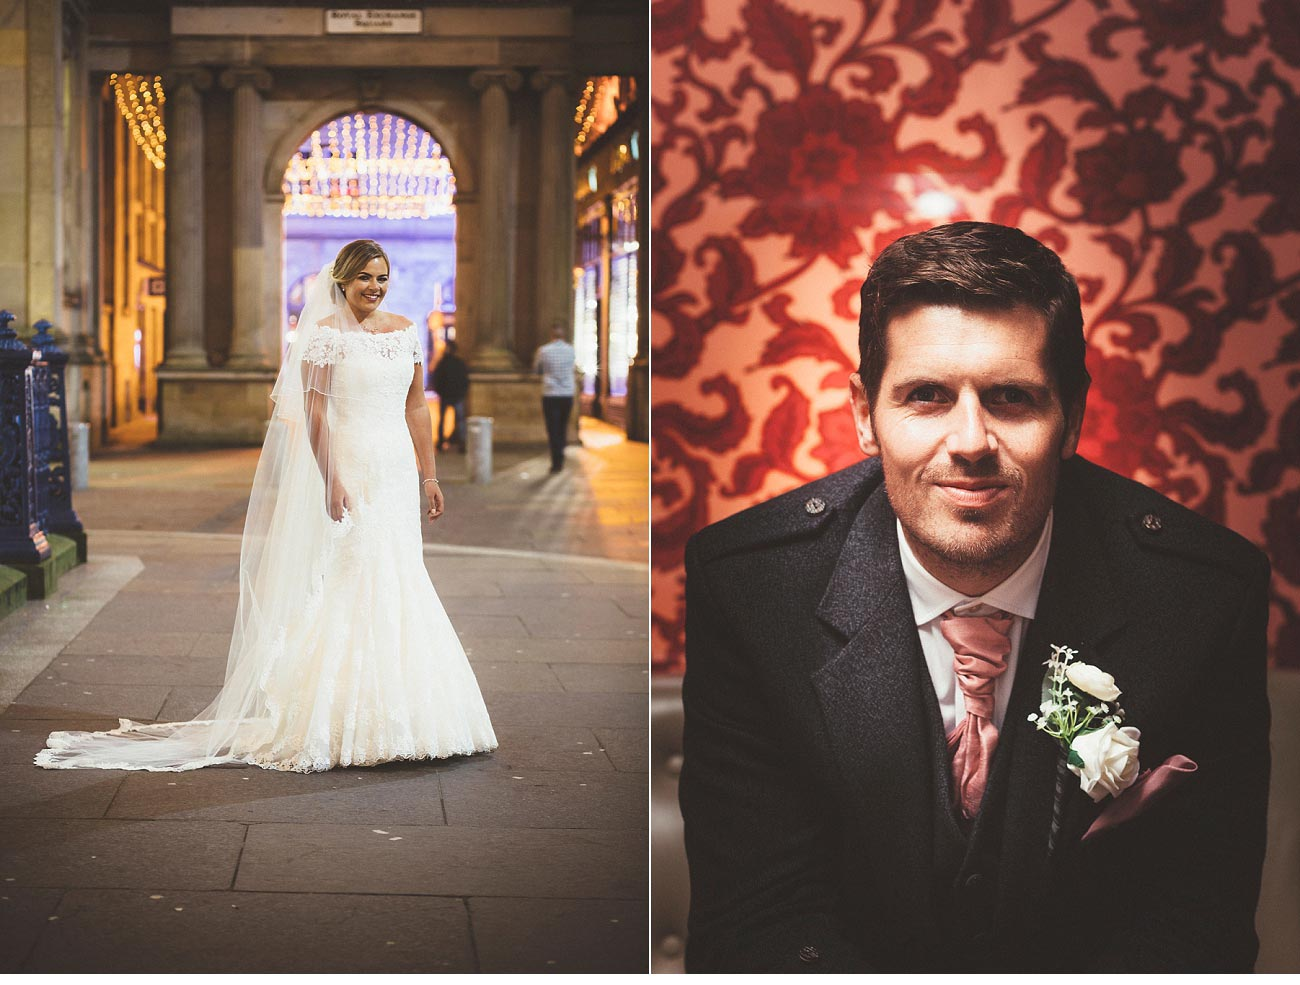 wedding photographer glasgow 29 Royal Exchange square 0061